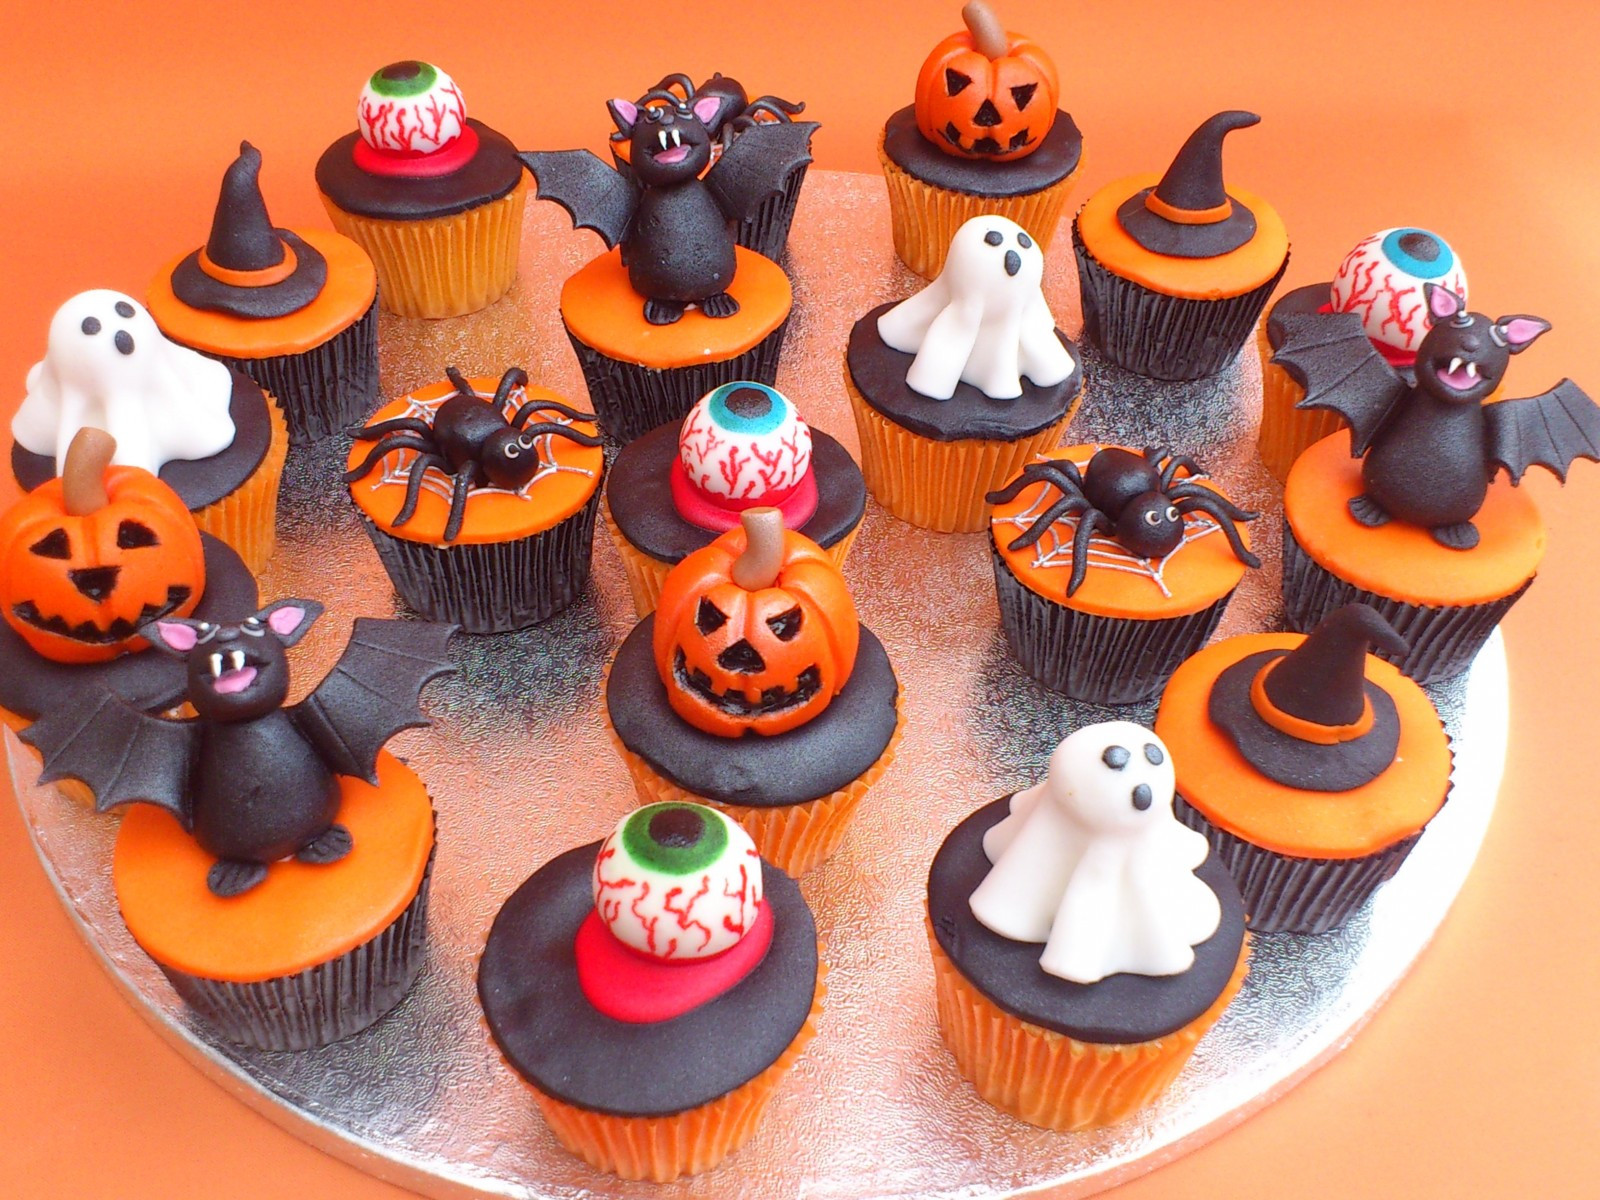 Halloween Cakes And Cupcakes  Halloween Cakes – Decoration Ideas